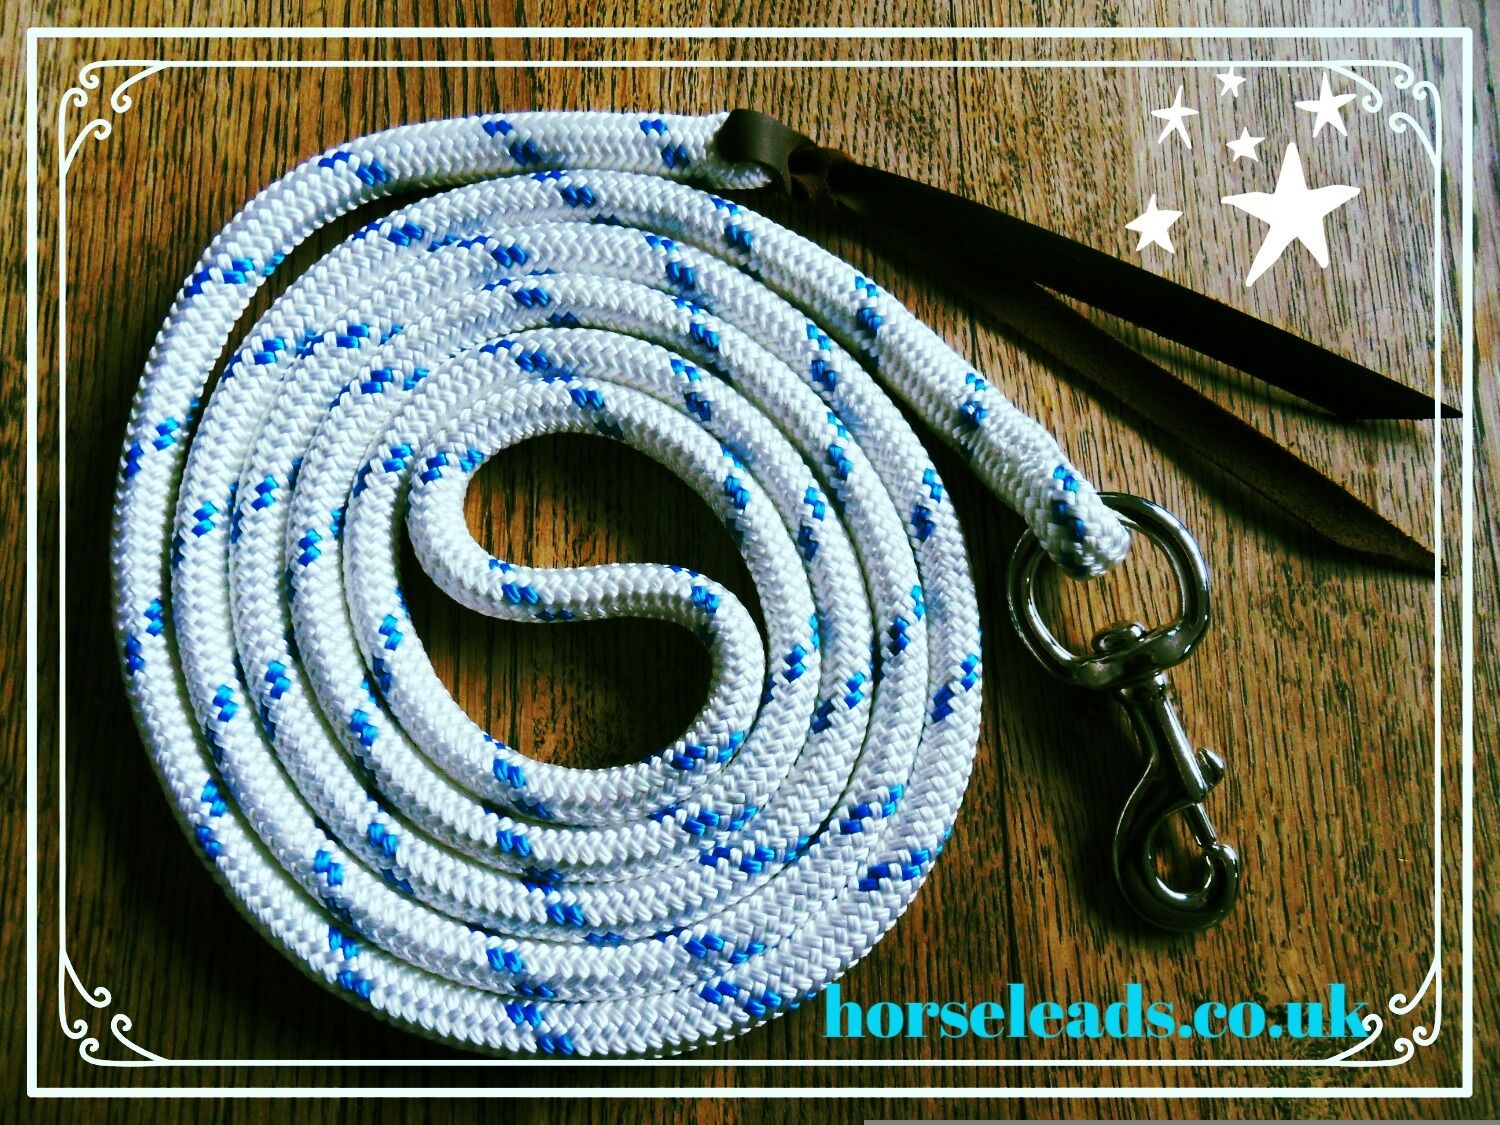 Natural Horsemanship 12ft Training Rope Lead Line Parelli Style